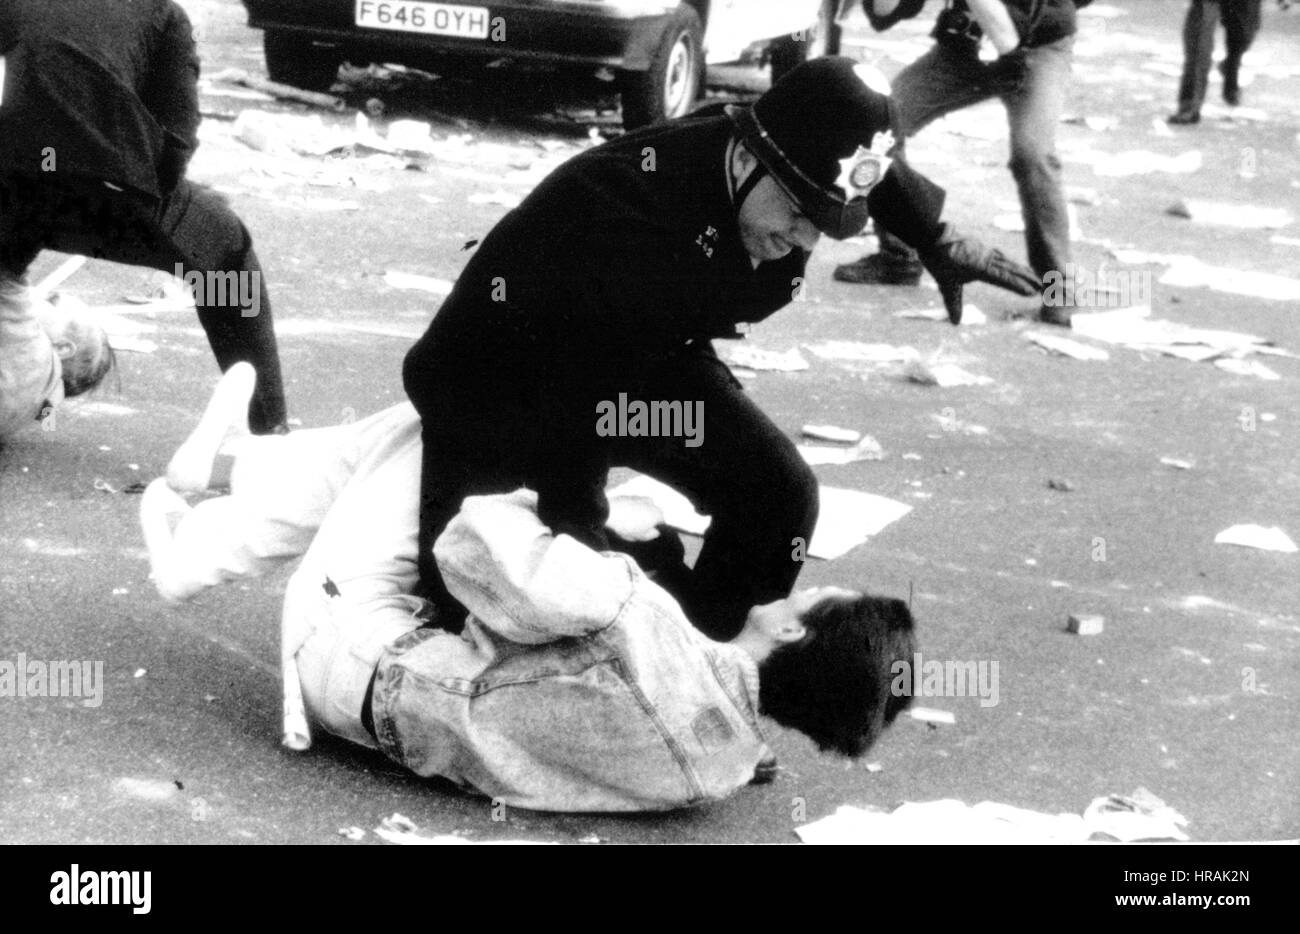 A police officer grapples with a protestor during the Poll Tax Riots in Trafalgar Square in London, England on March - Stock Image